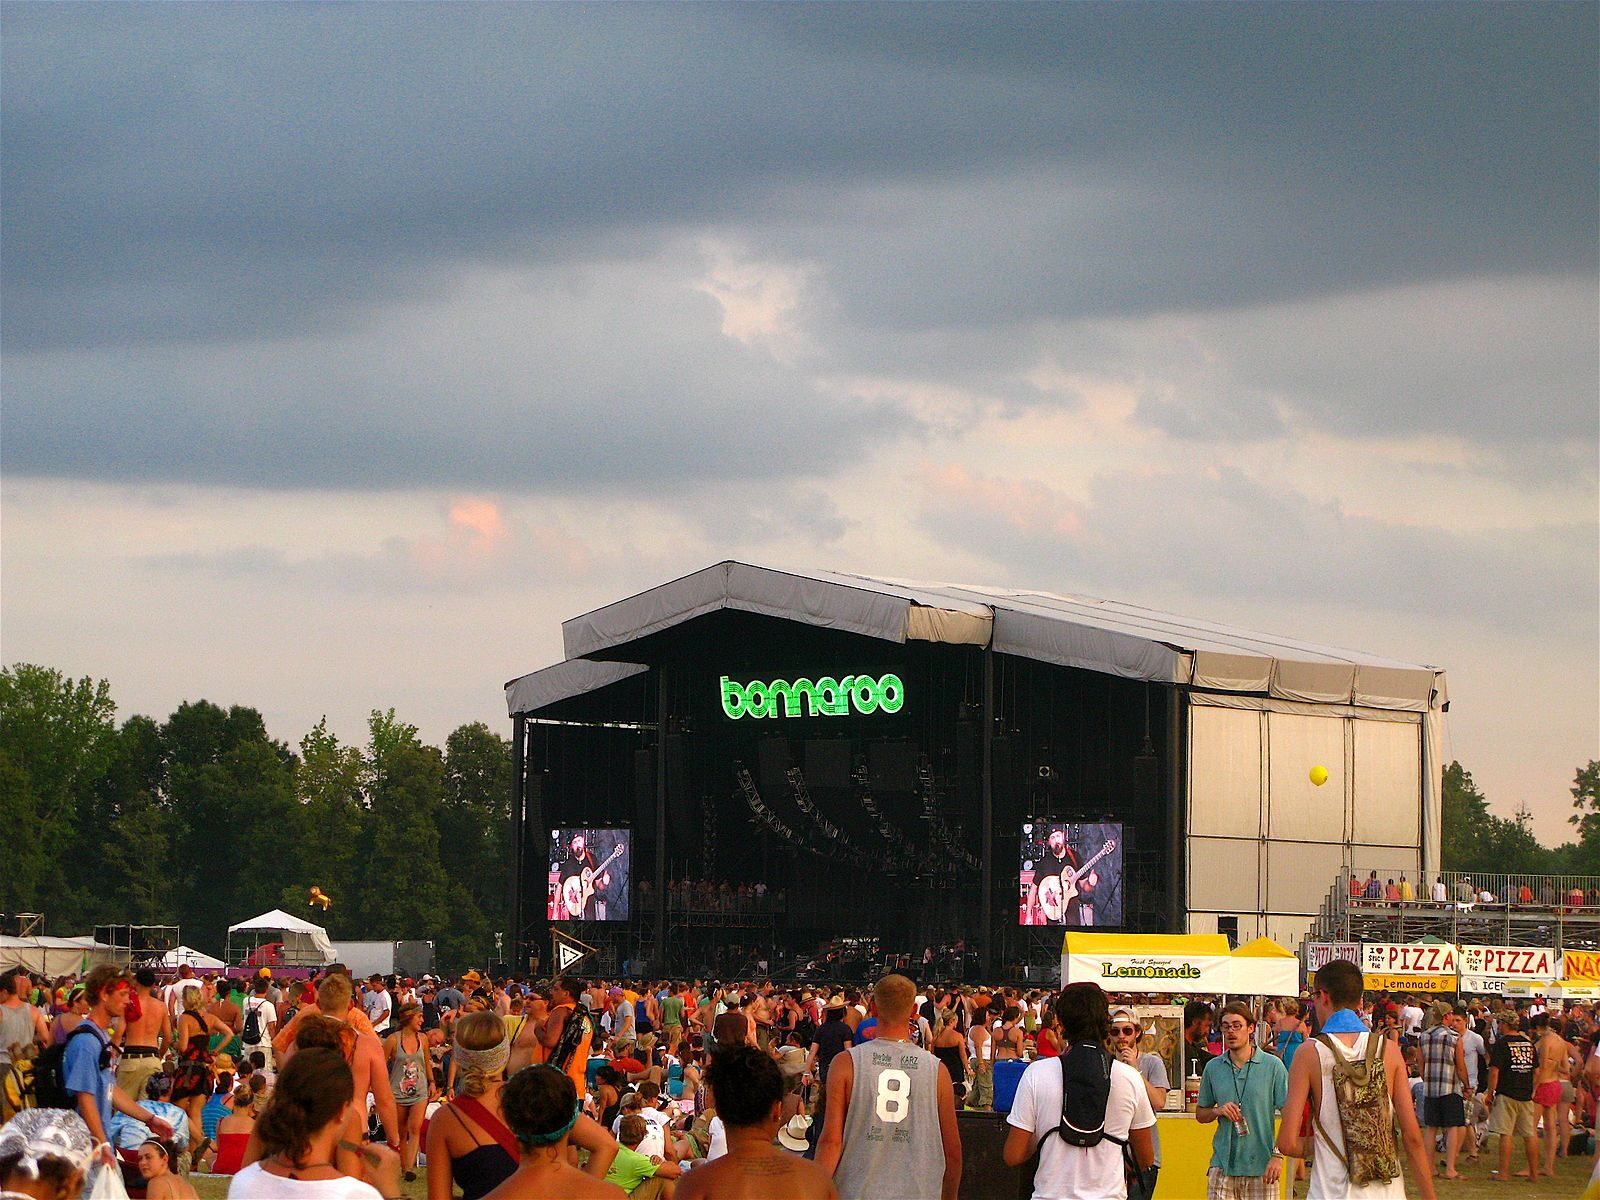 A crowd and stage at Bonnaroo Music Festival